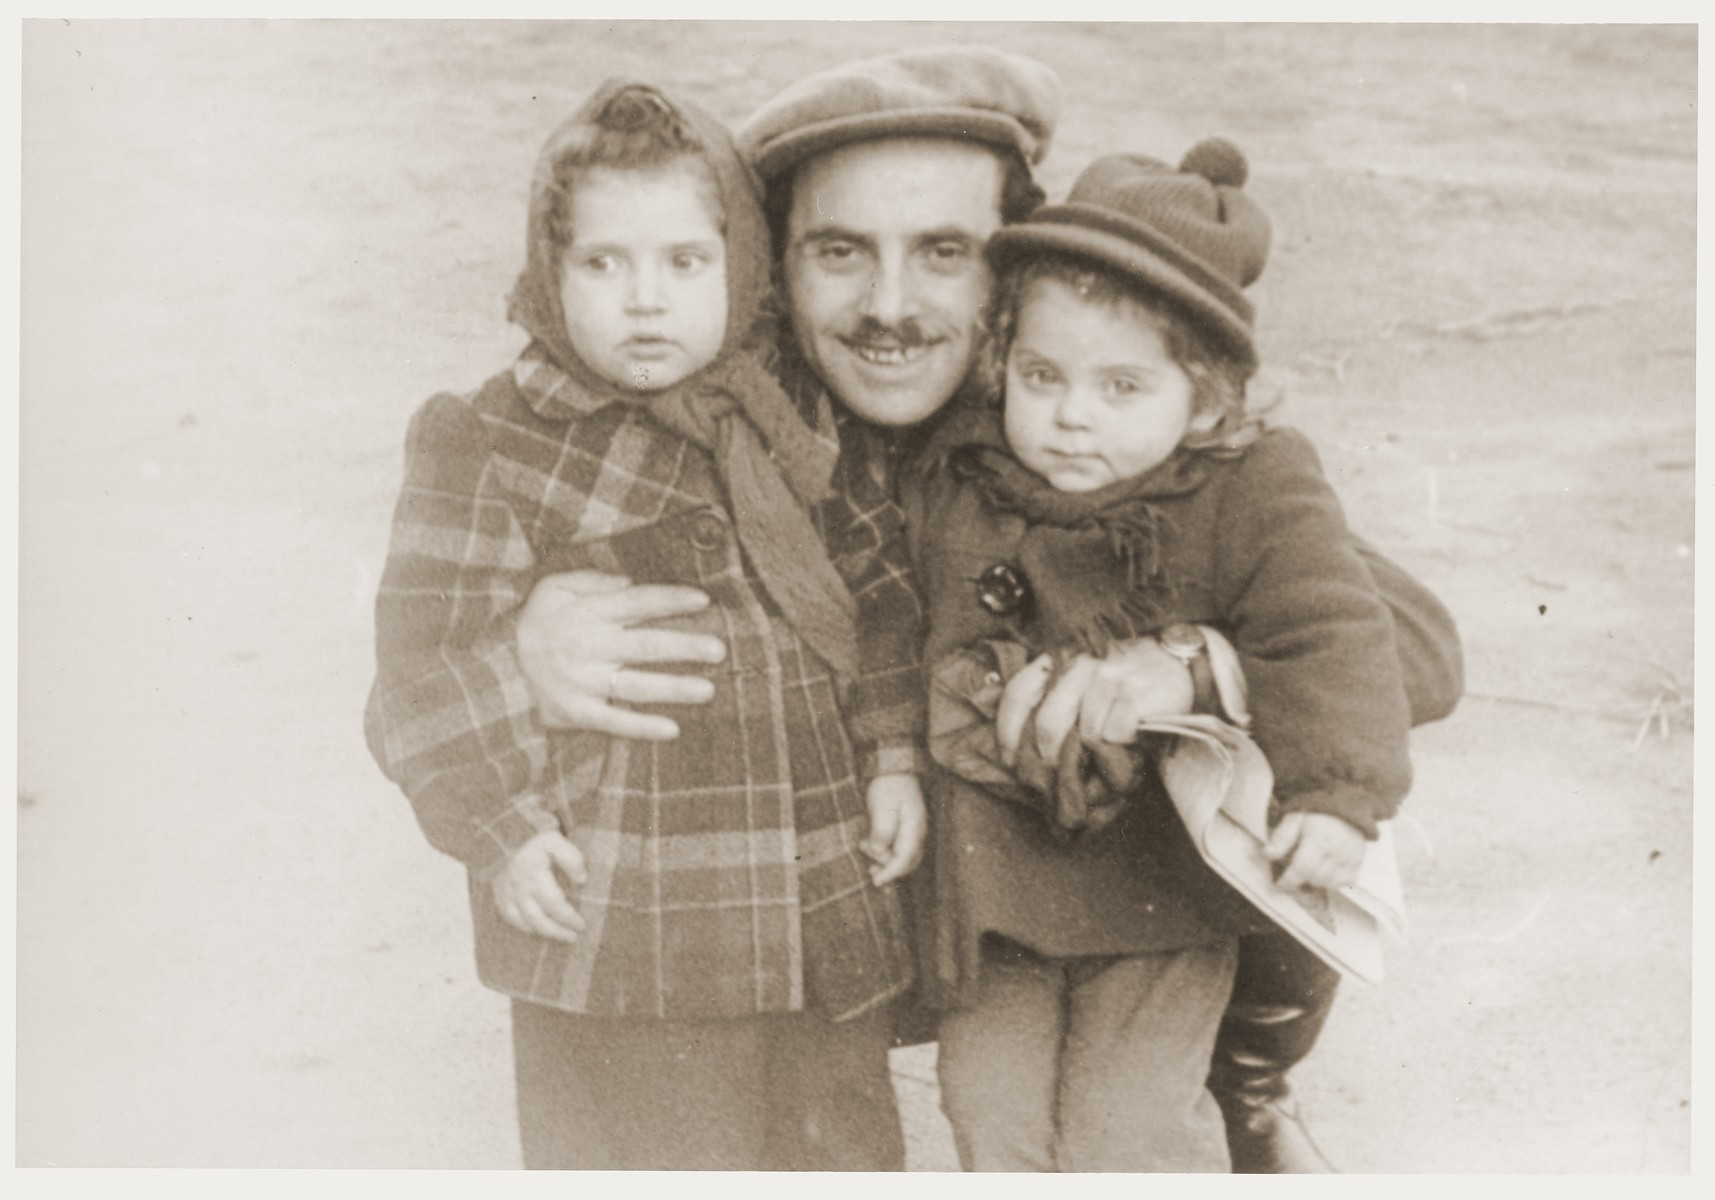 Noach Miedzinski poses with his niece (left) and daughter Nili (right) at the Kibbutz Nili hachshara (Zionist collective) in Pleikershof, Germany.